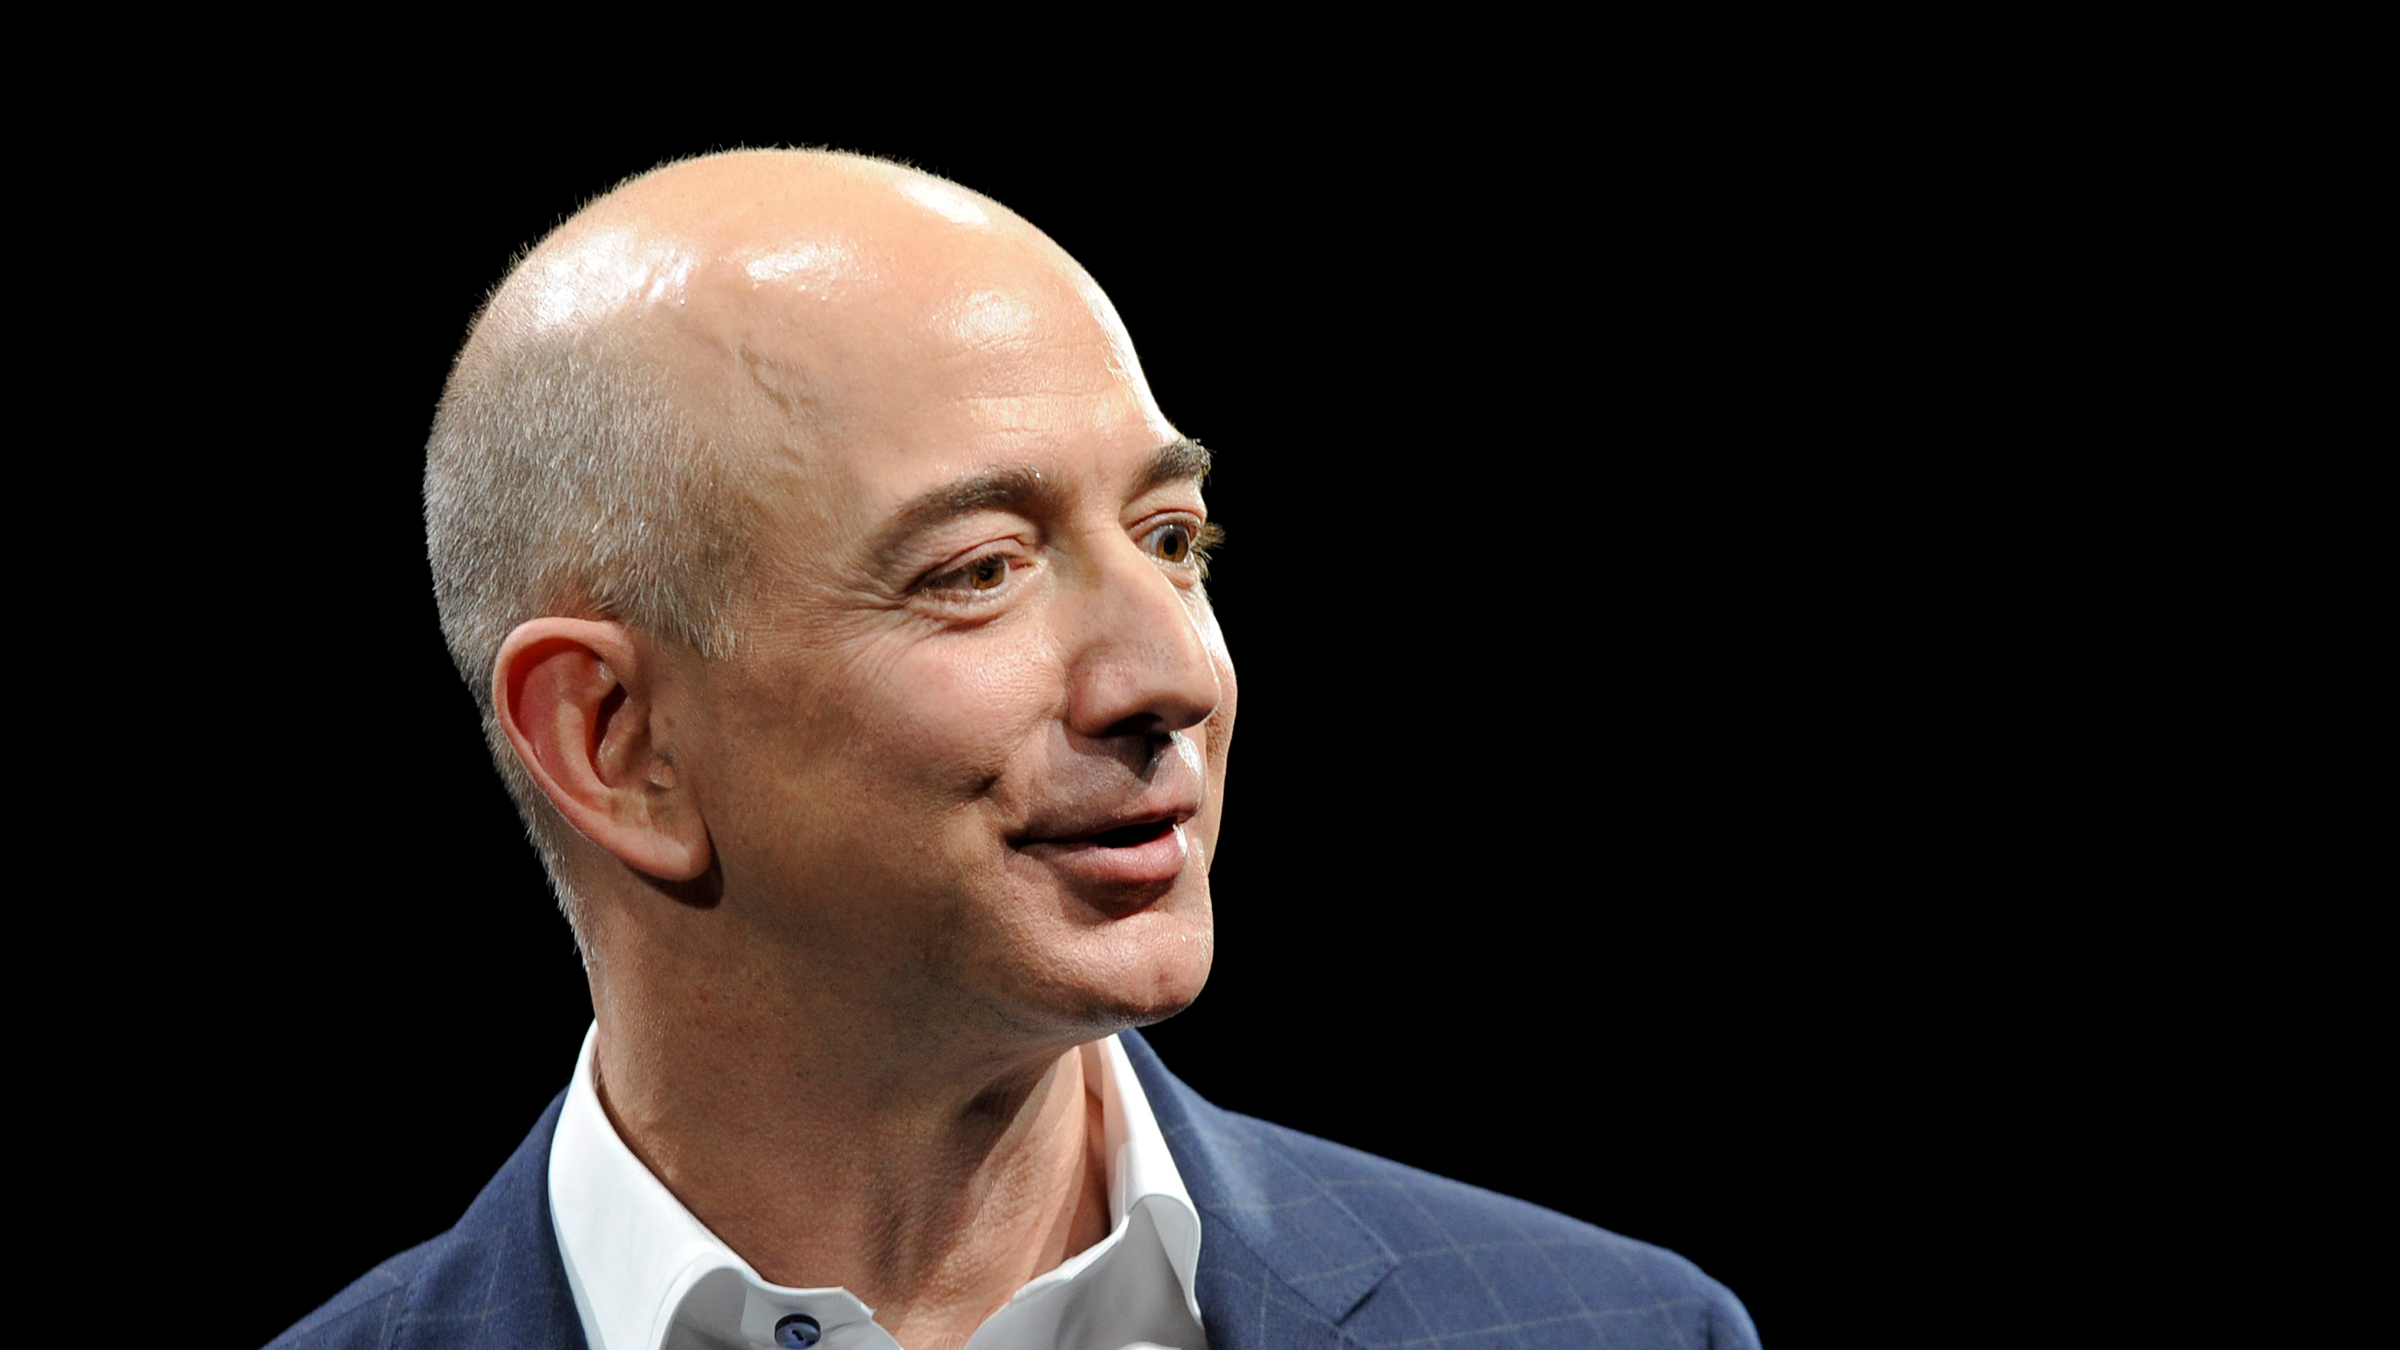 Amazon CEO Jeff Bezos demonstrates the Kindle Paperwhite during Amazon's Kindle Fire event in Santa Monica, California September 6, 2012. Amazon.com Inc unveiled a larger, high-speed Kindle Fire tablet on Thursday for $499, challenging Apple Inc's dominant iPad and intensifying a battle with Google Inc and Microsoft in the booming tablet arena.  REUTERS/Gus Ruelas